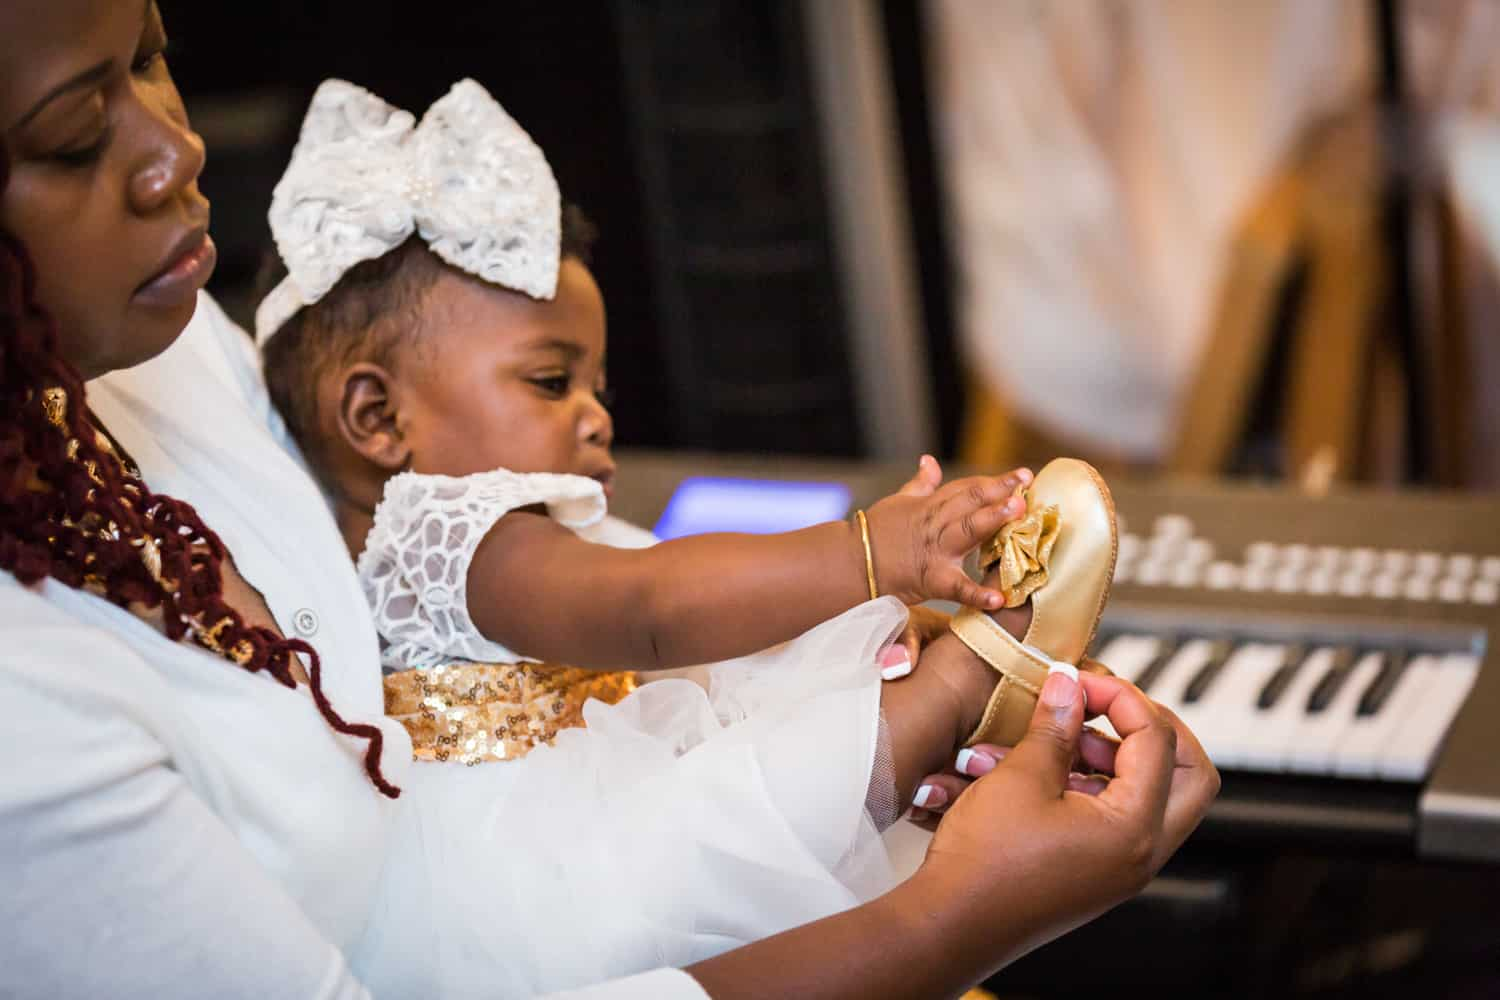 Baby girl playing with gold shoe as mother puts on shoe